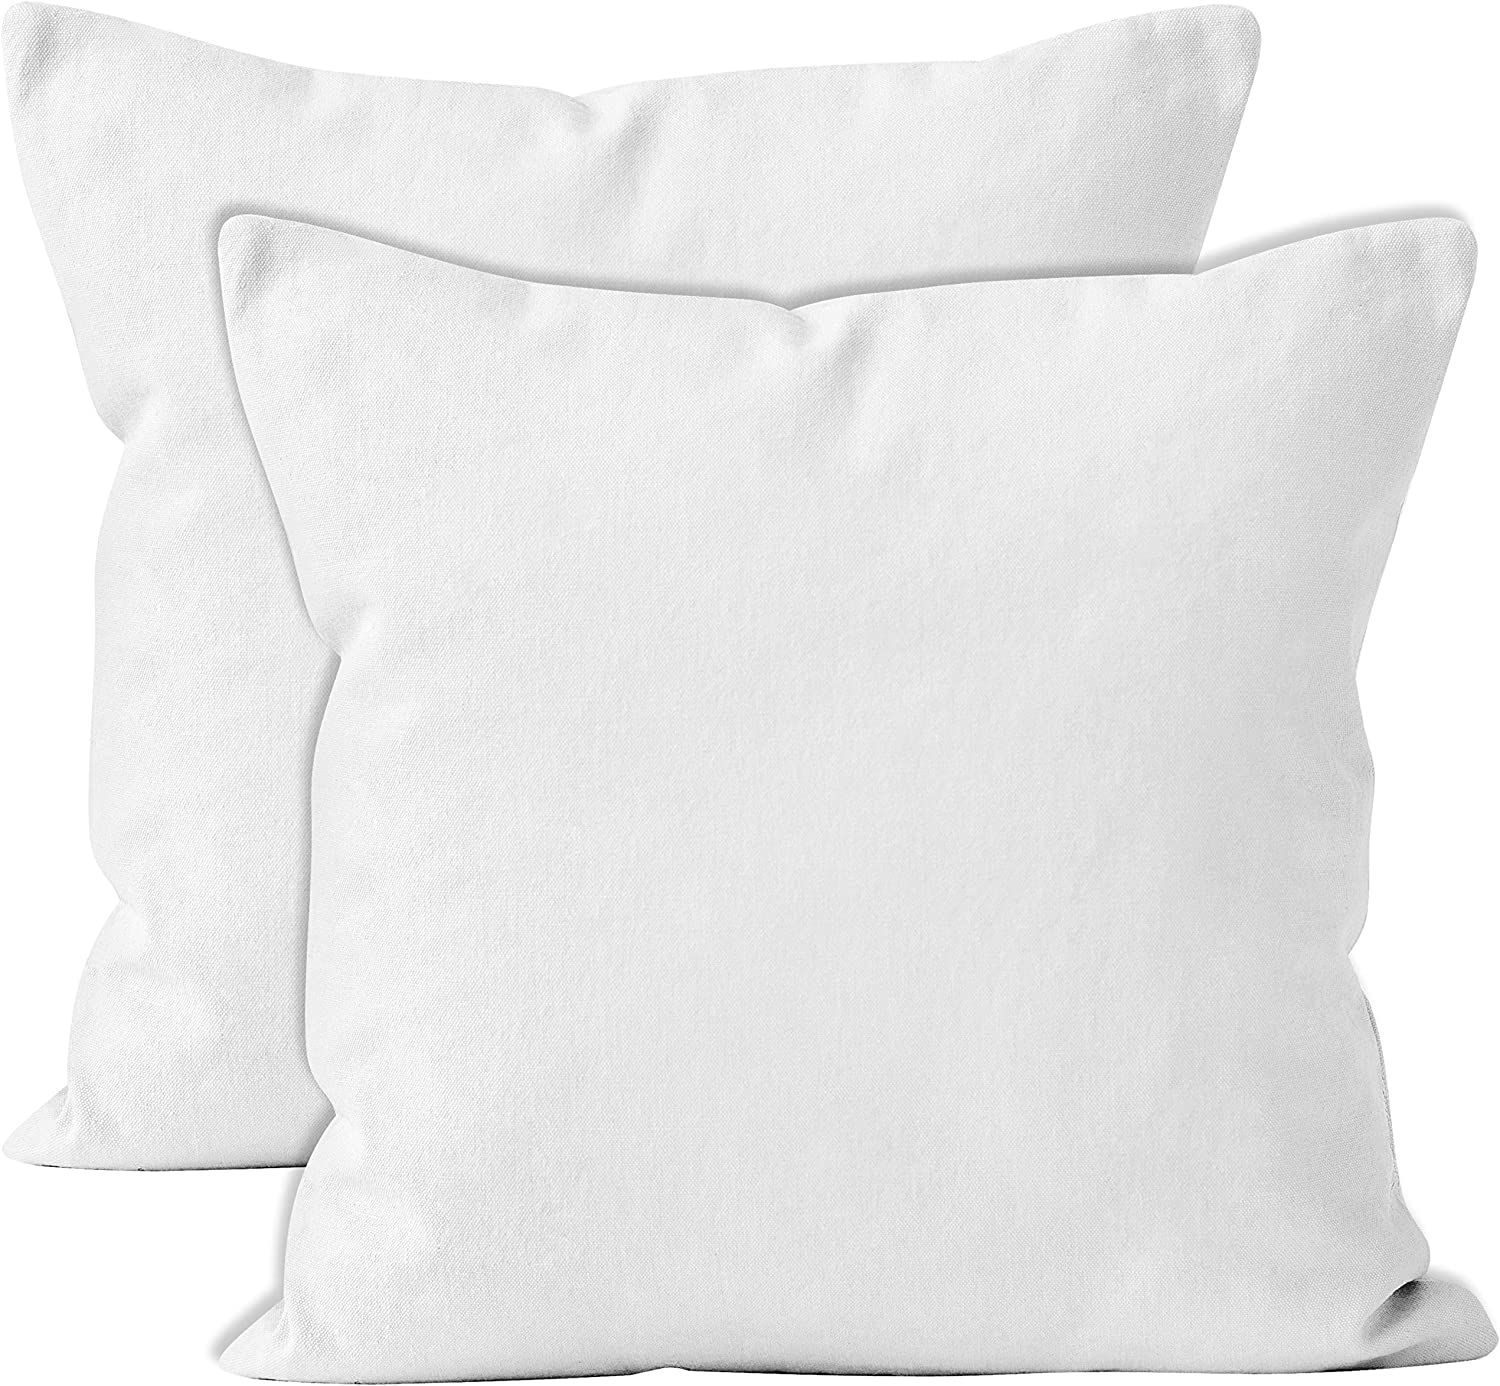 Encasa Homes Throw Pillow Cover 2pc Set - White - 18 x 18 inch Solid Dyed Cotton Canvas Square Accent Decorative Cushion Case for Couch Sofa Chair Bed & Home